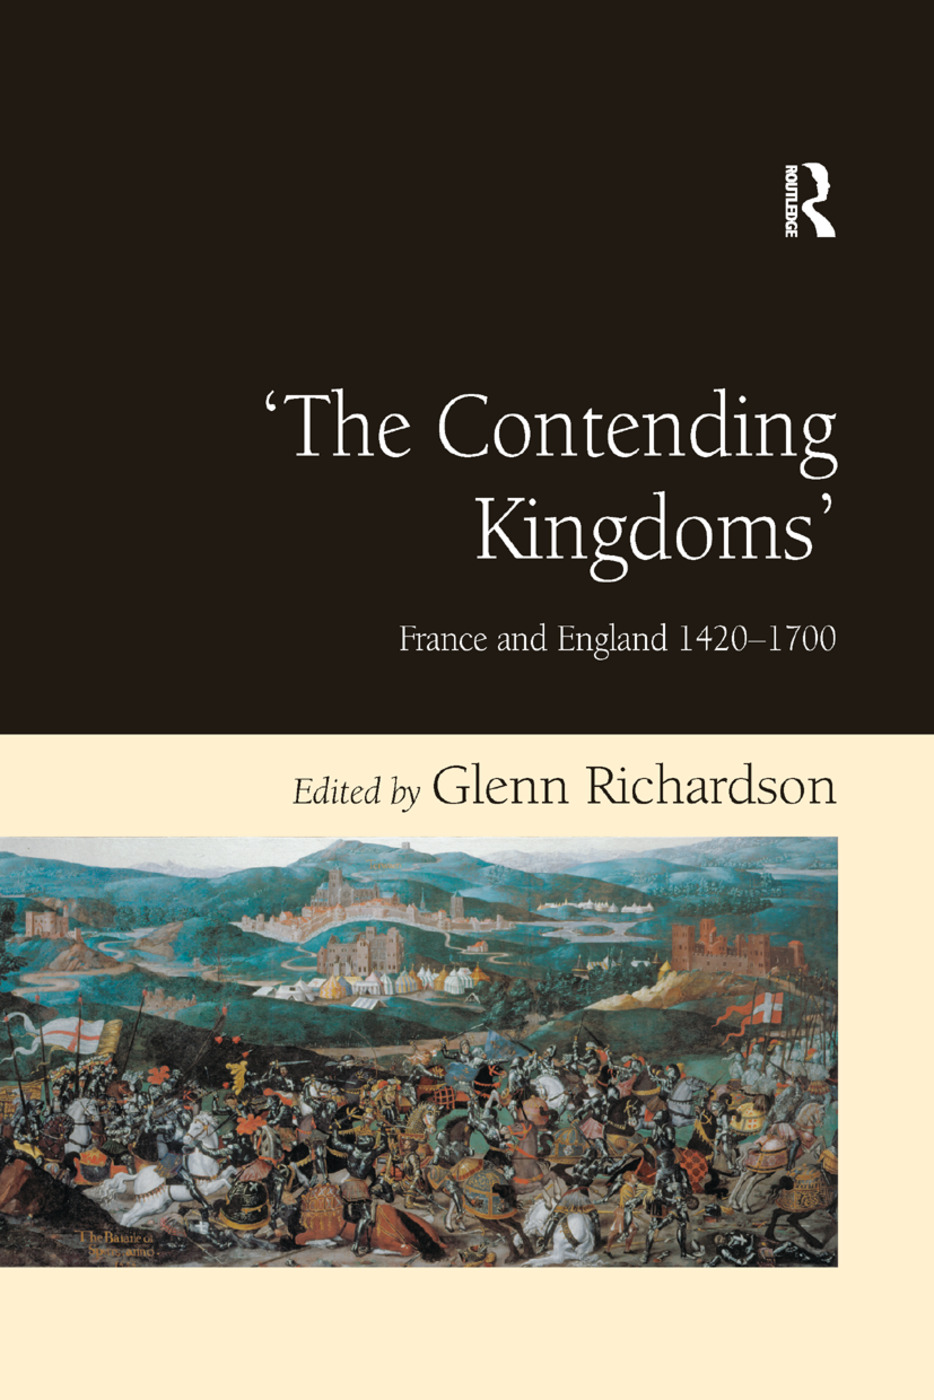 'The Contending Kingdoms'